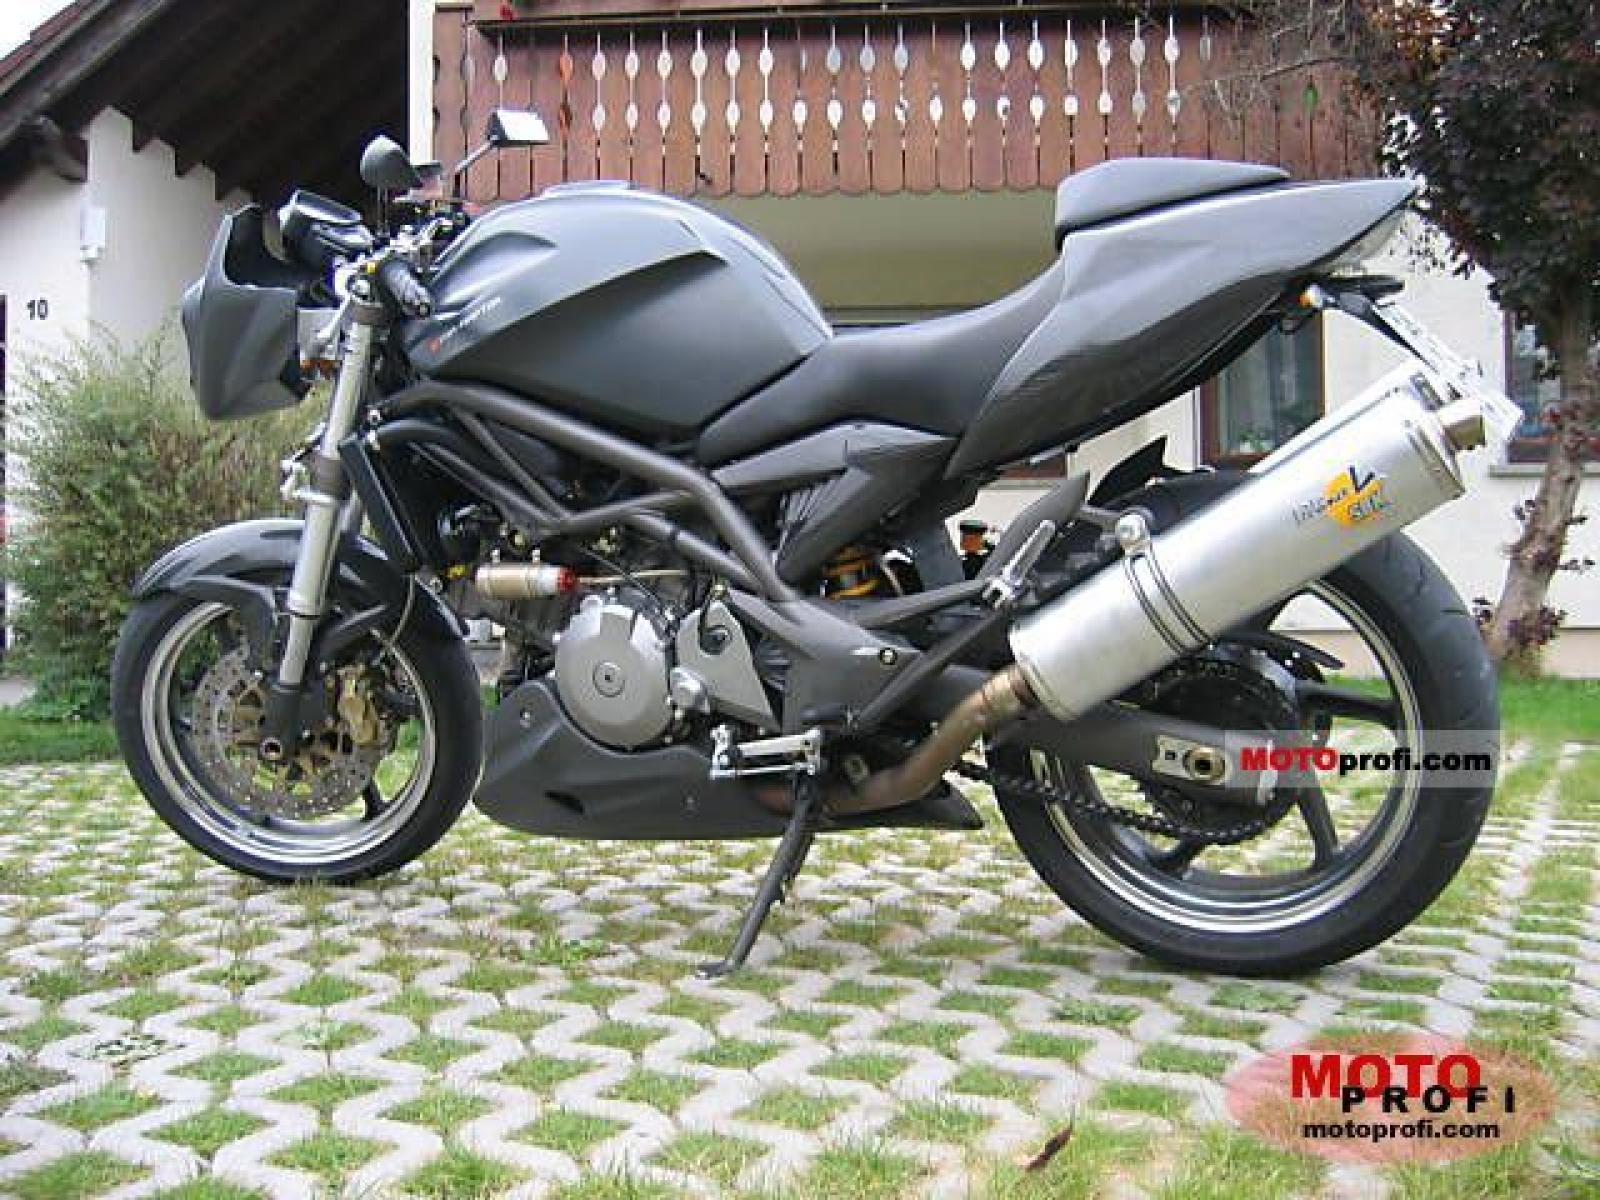 Cagiva Xtra Raptor 1000 images #68009